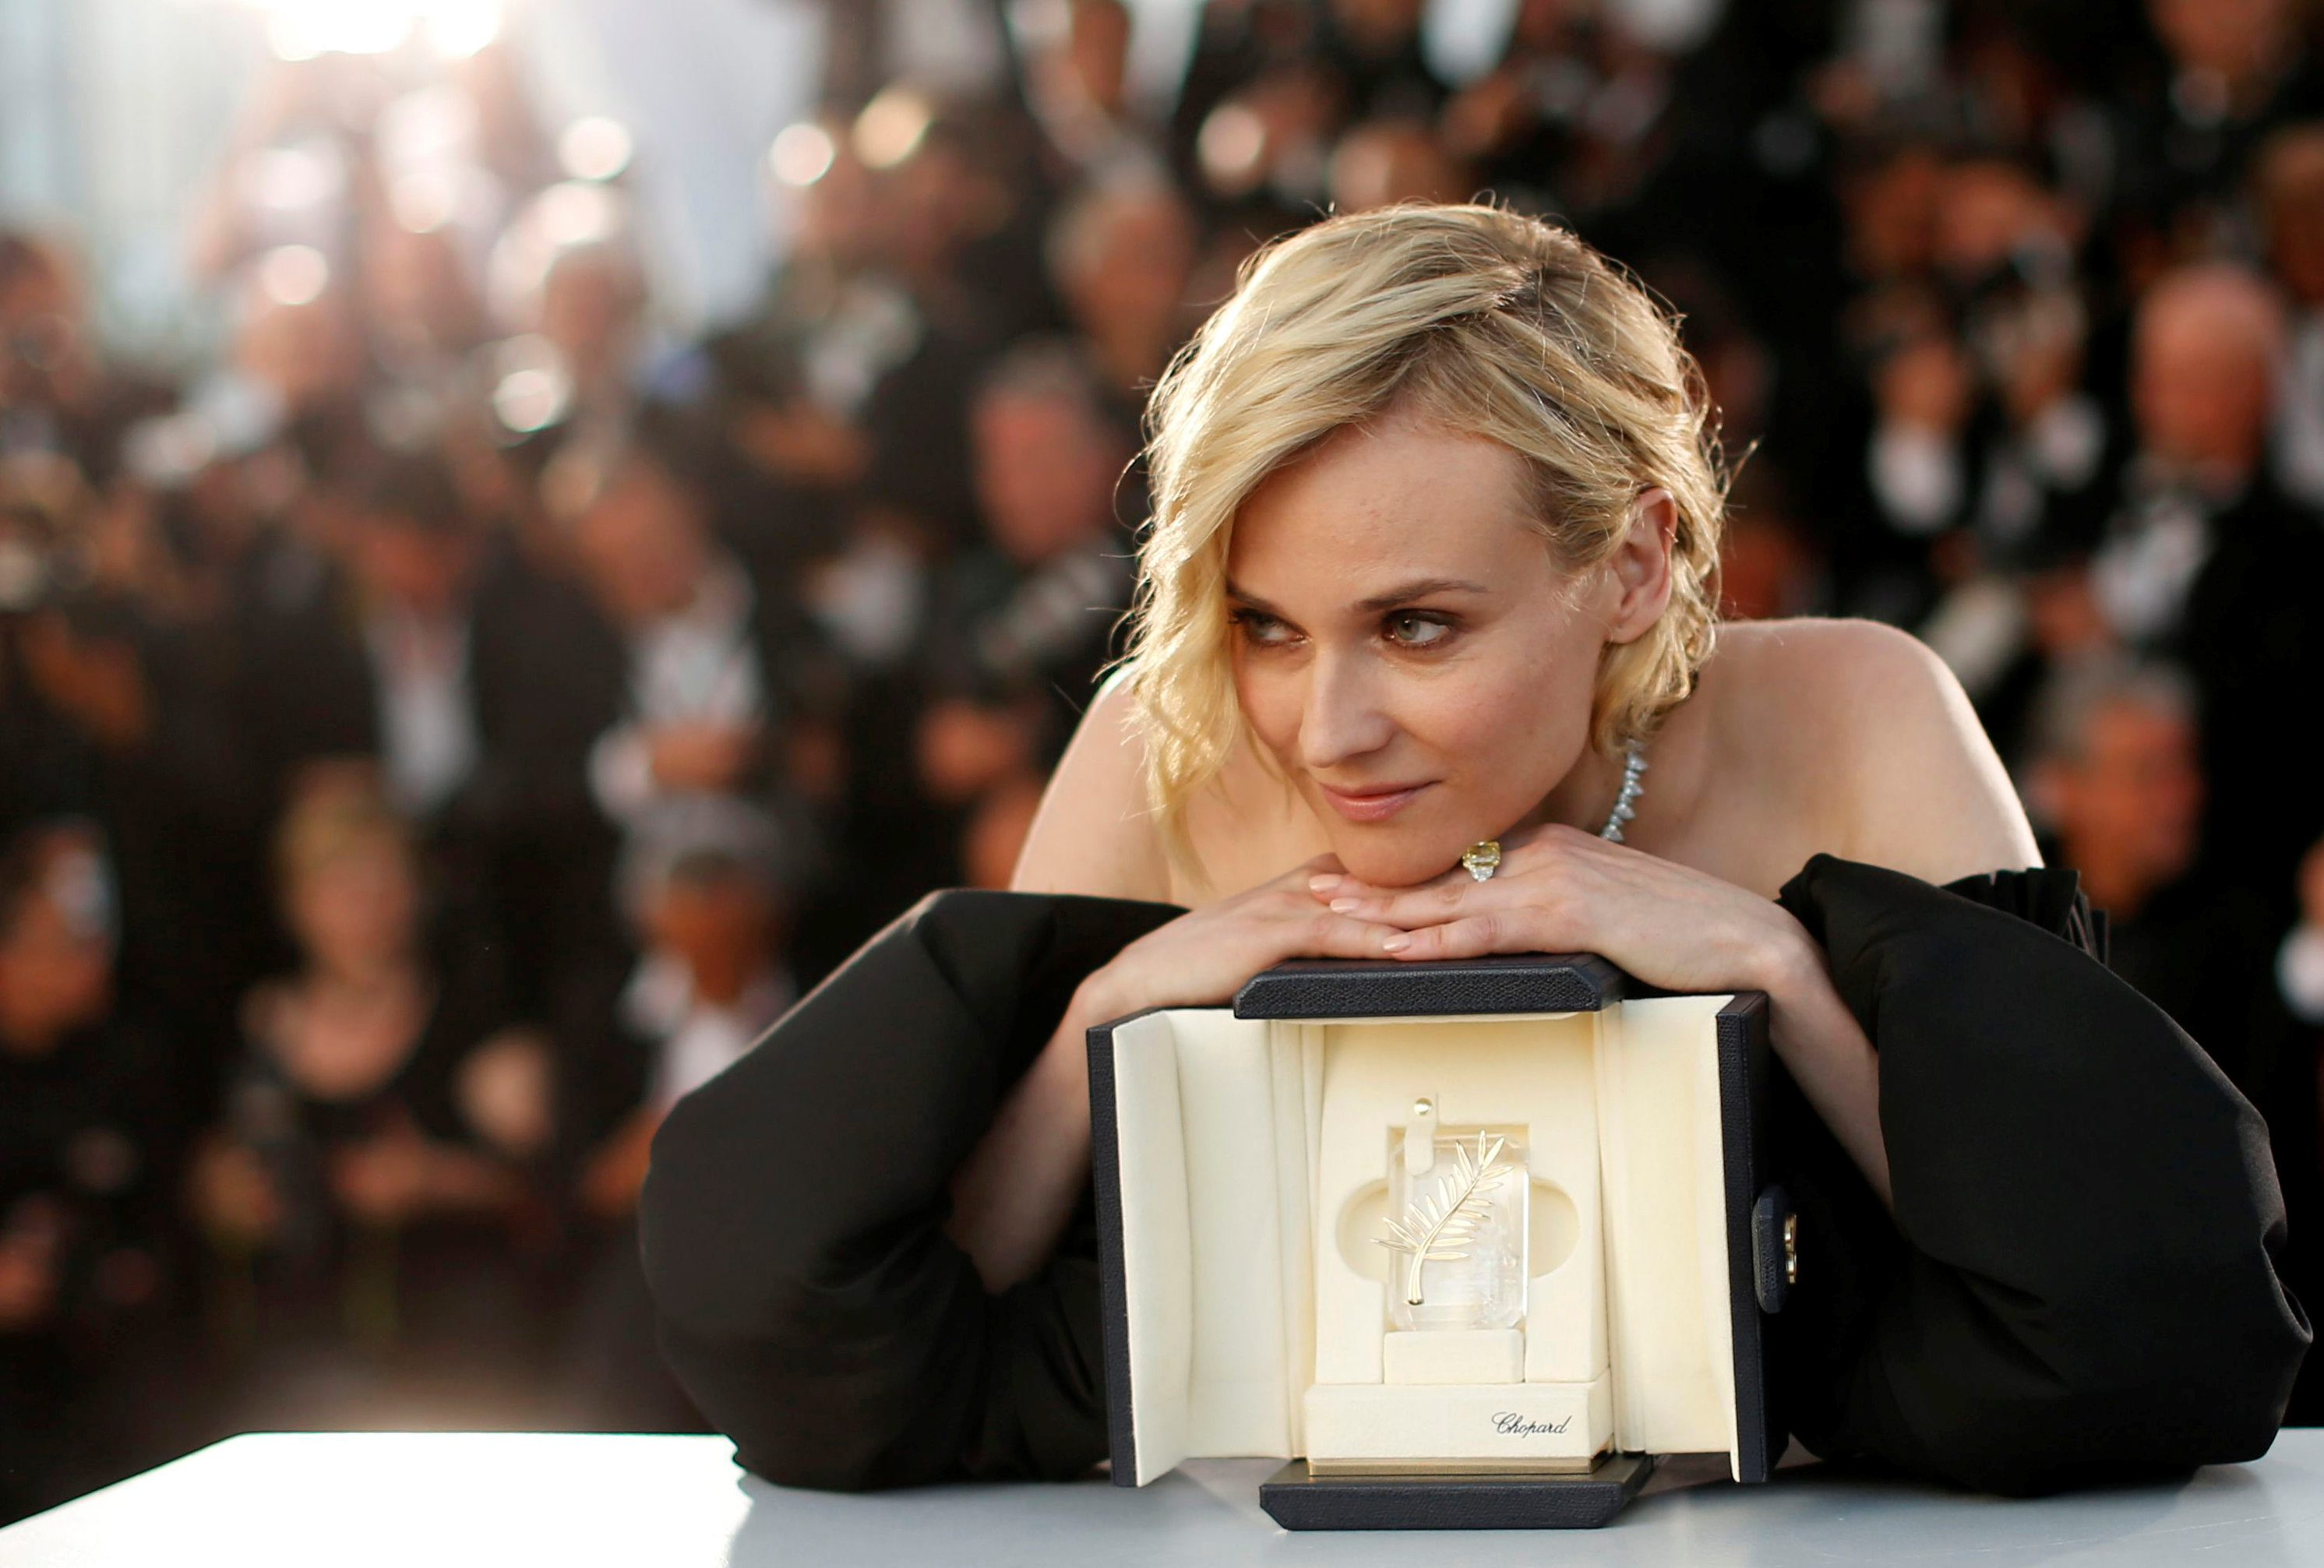 70th Cannes Film Festival - Photocall after Closing ceremony - Cannes, France. 28/05/2017. Actress Diane Kruger, Best Actress award winner for her role in the film